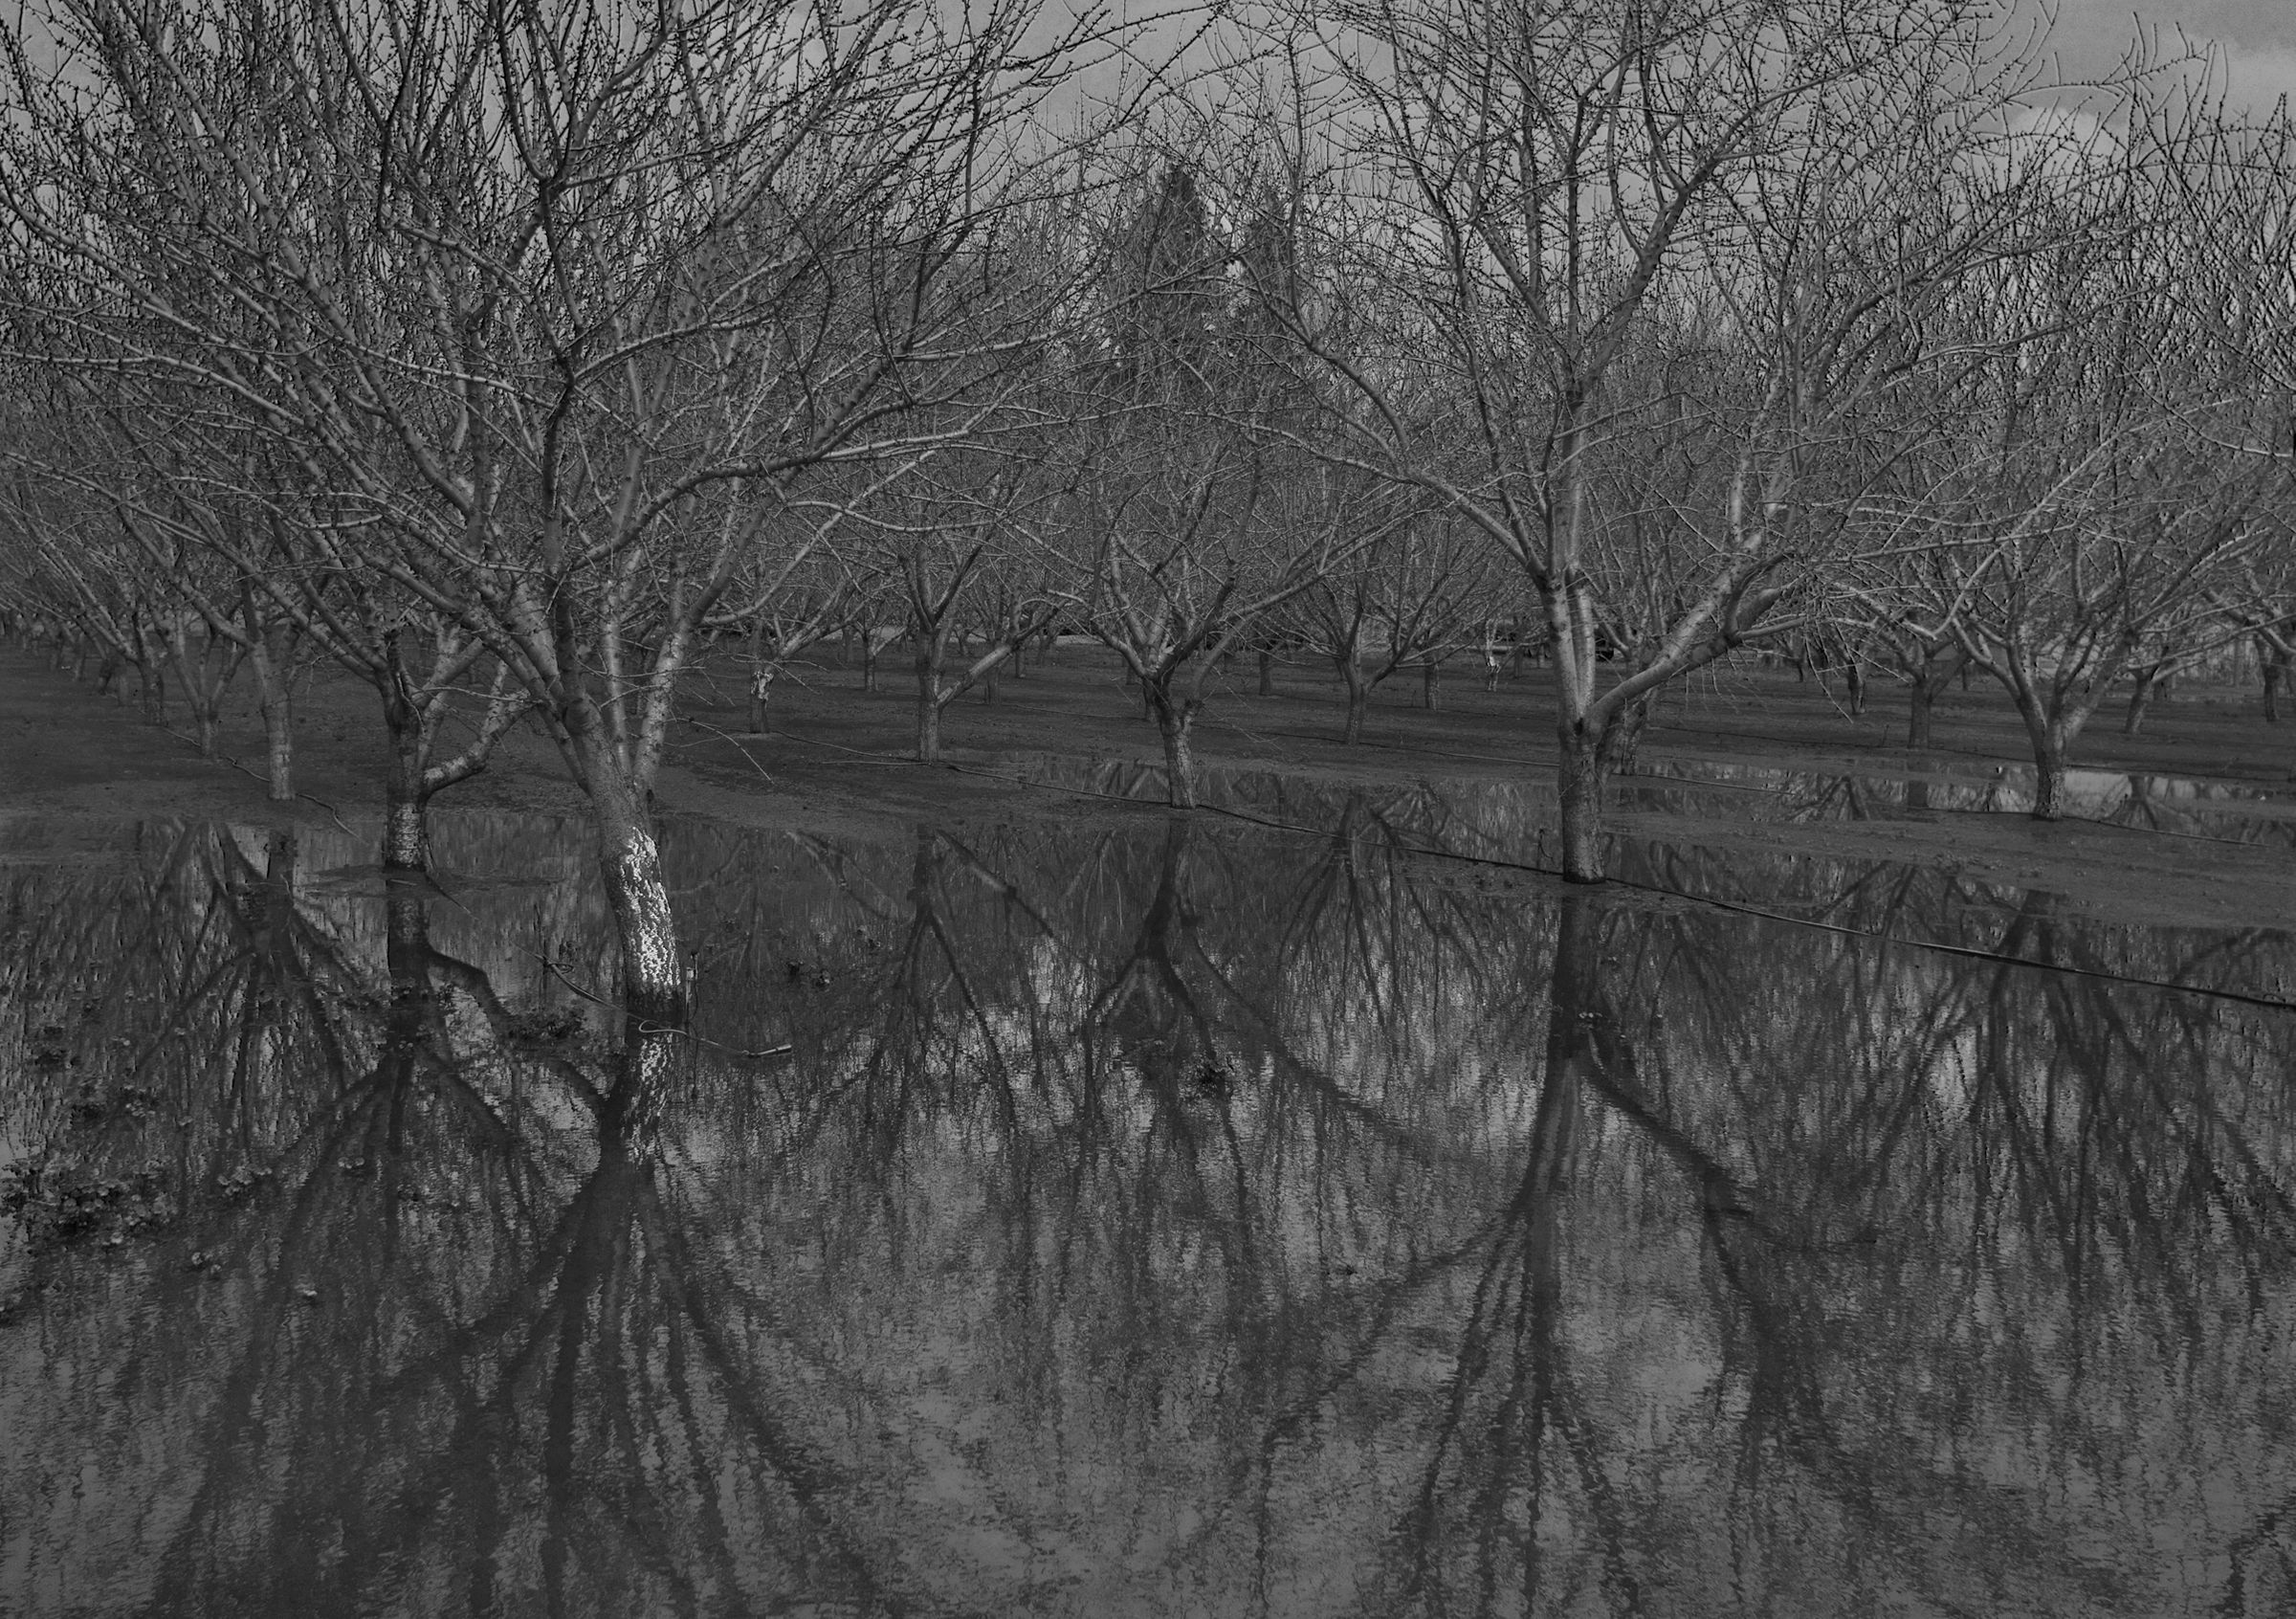 Drowned Trees, Central California